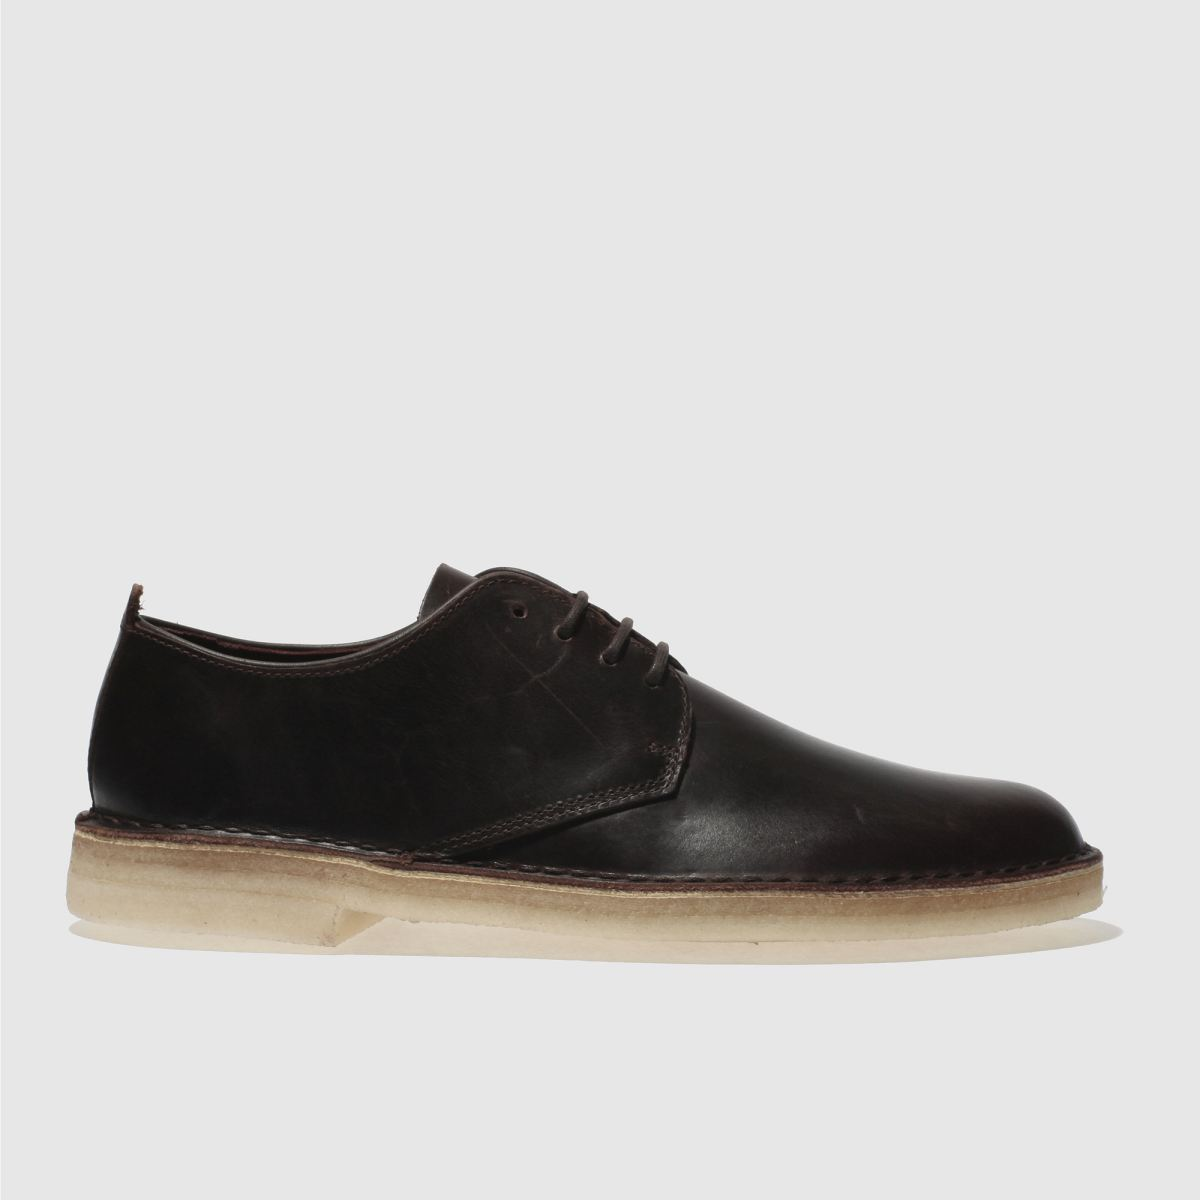 Clarks Originals Dark Brown Desert London Shoes